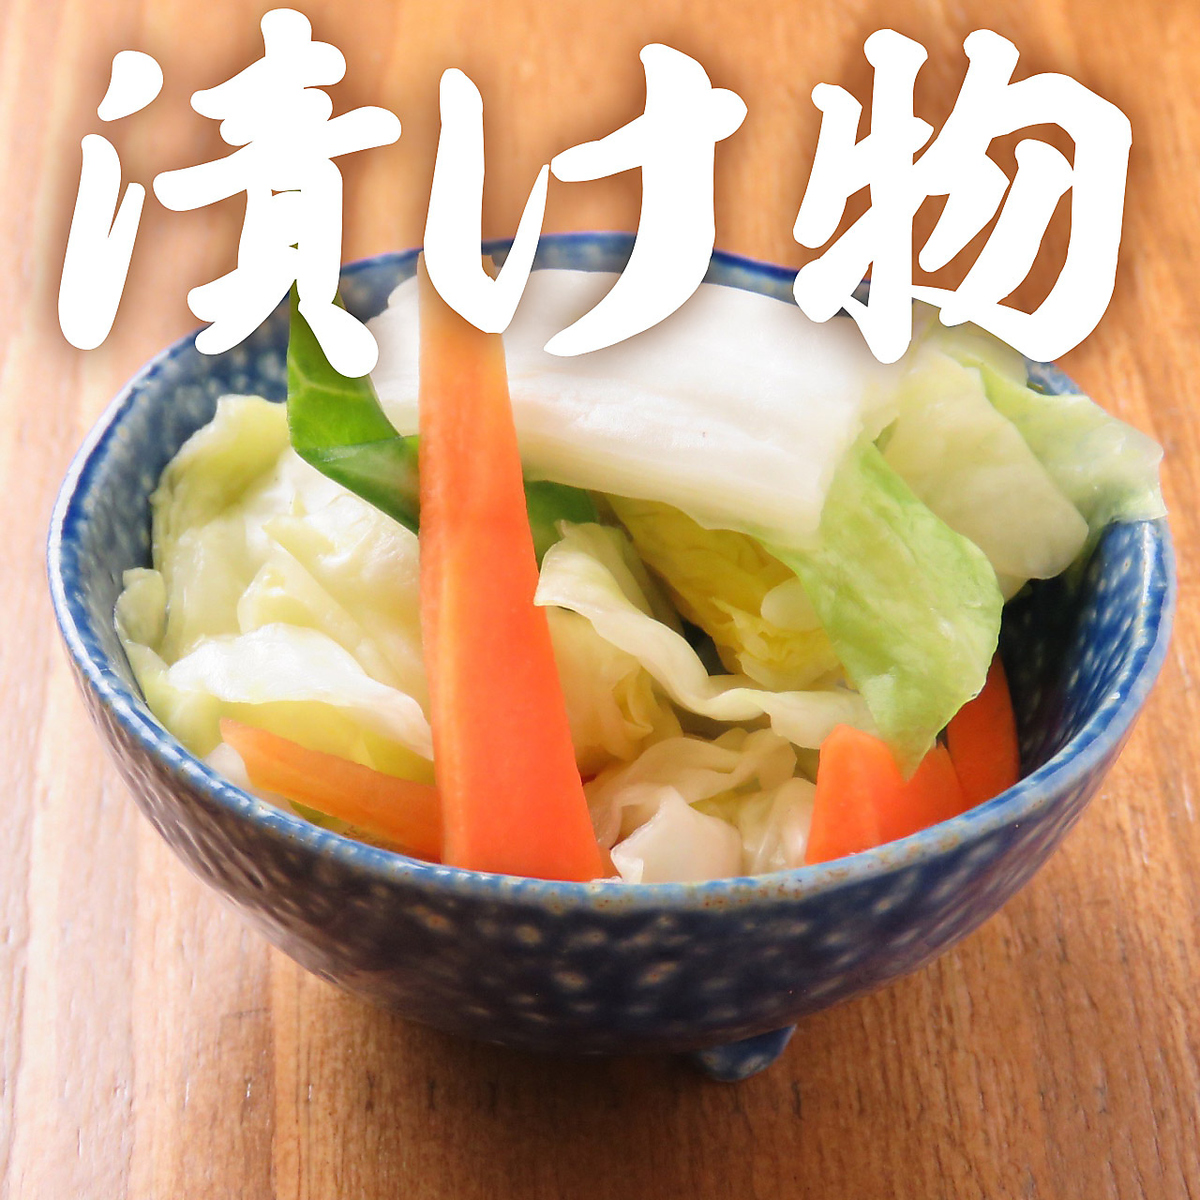 【Appetizers】 Pickles / Edamame